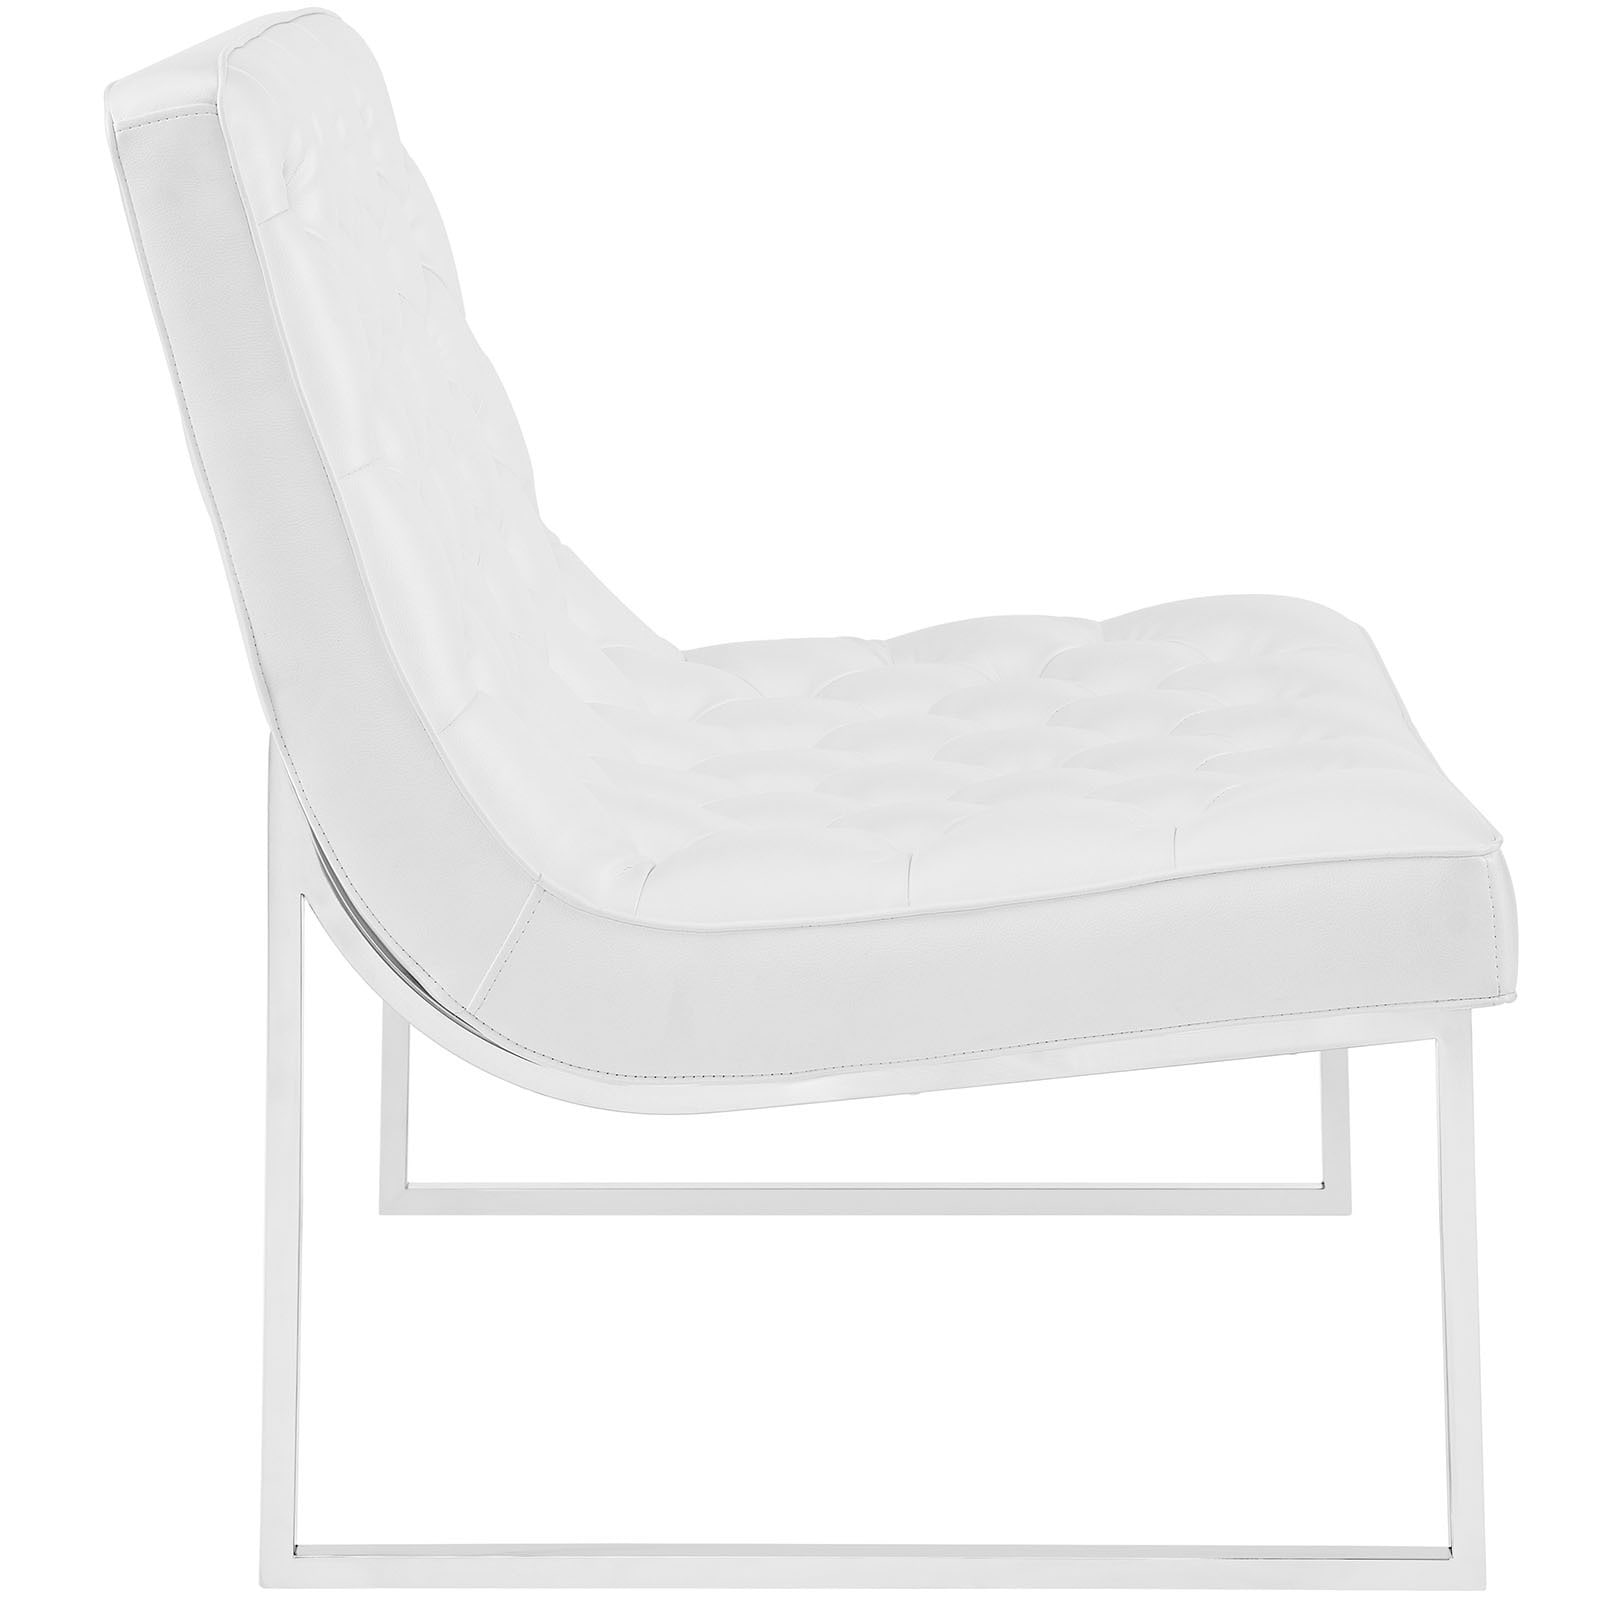 Wondrous Ibiza Memory Foam Lounge Chair Gmtry Best Dining Table And Chair Ideas Images Gmtryco